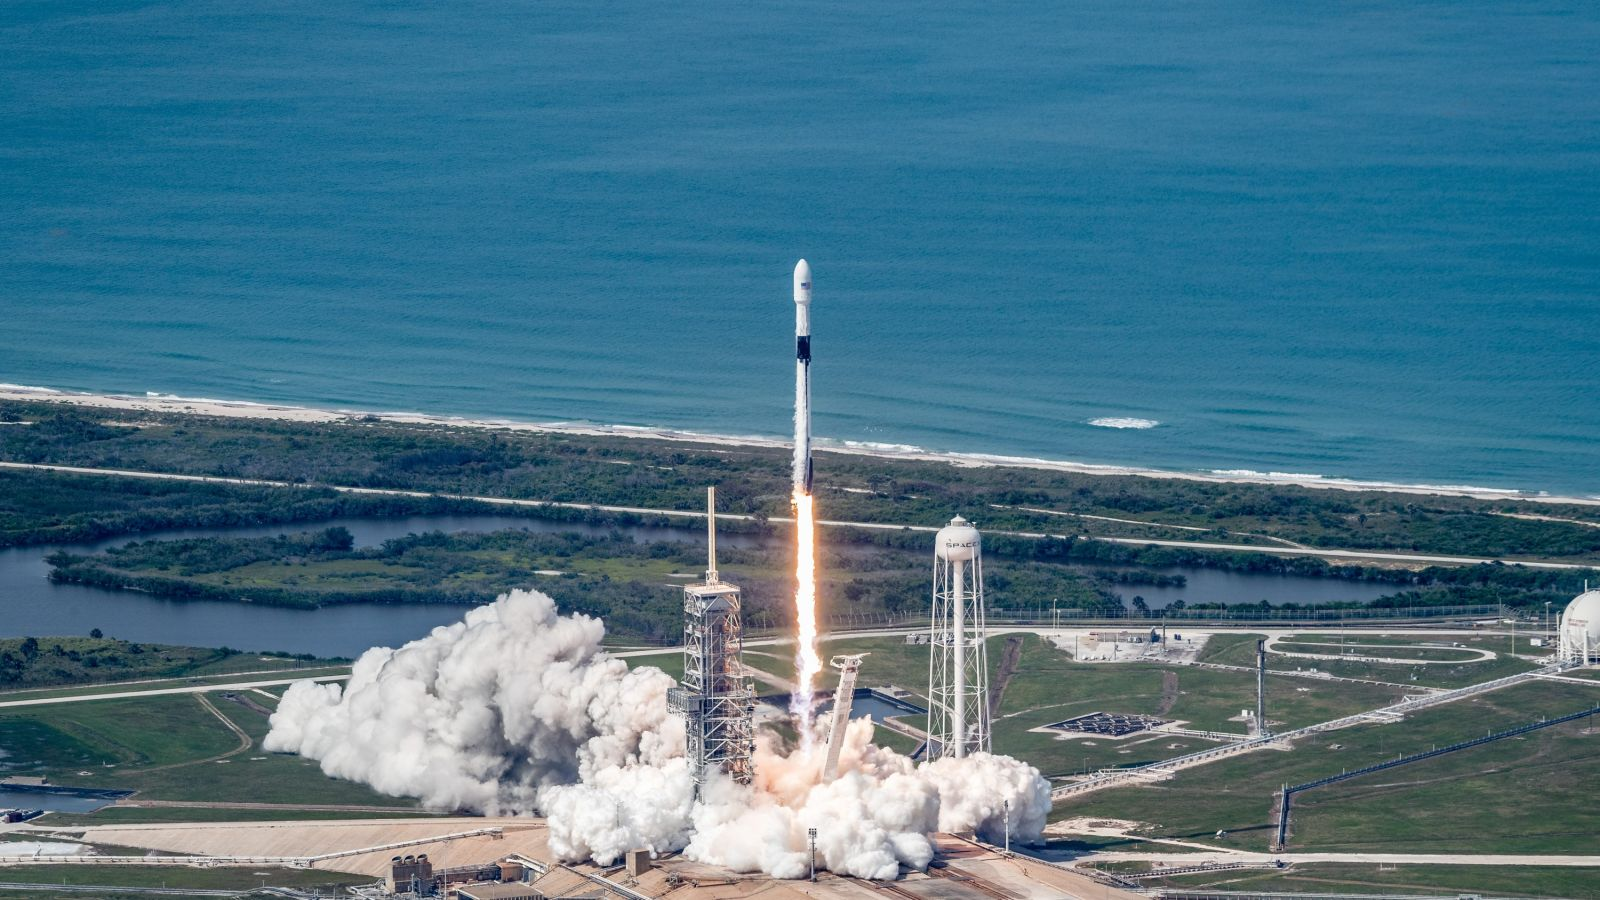 SpaceX's Block 5 Falcon 9 lifts off at Kennedy Space Center's Launch Complex 39A. Photo Credit: SpaceX